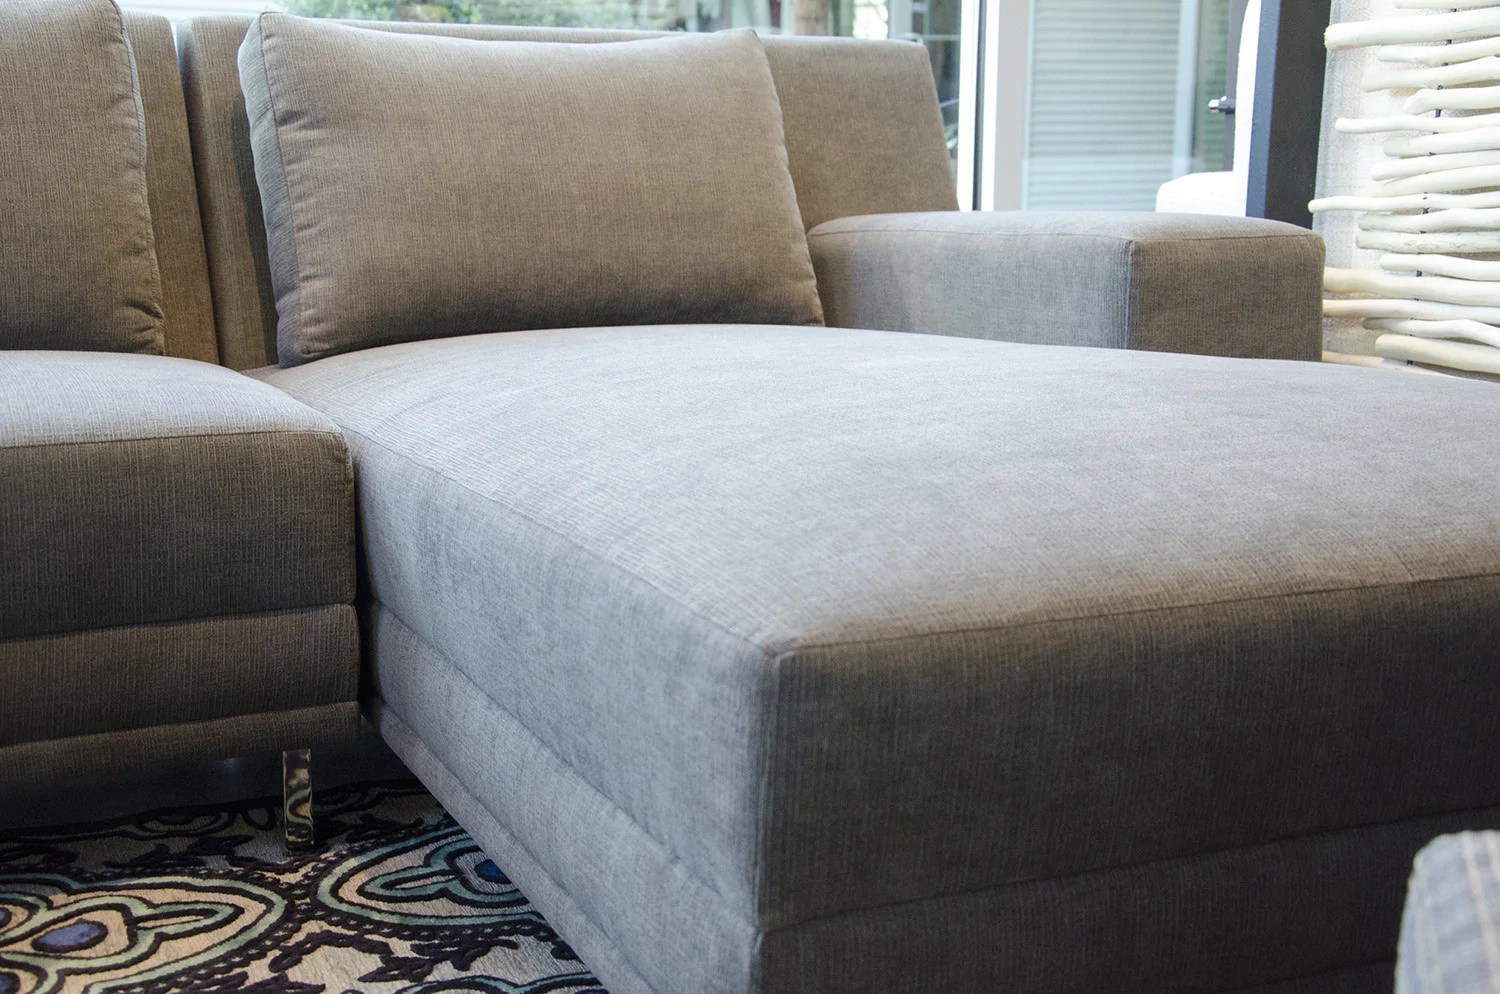 crypton fabric for sofas chaise lounge recliner sofa the piazza sectional by lazar industries in five elements furniture